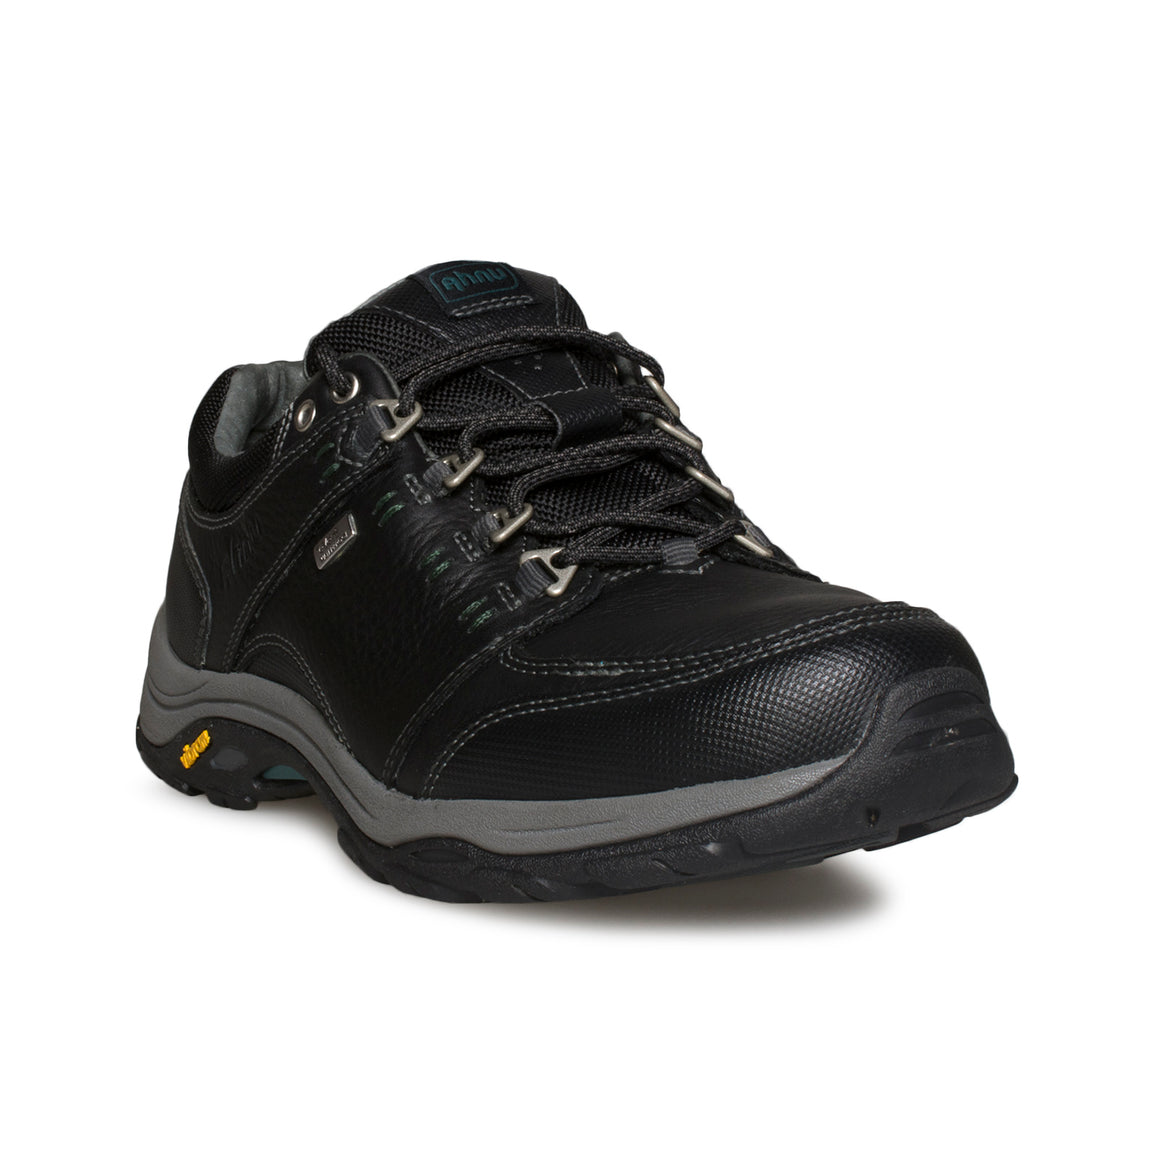 Ahnu Montara III Event Black Shoes - Women's